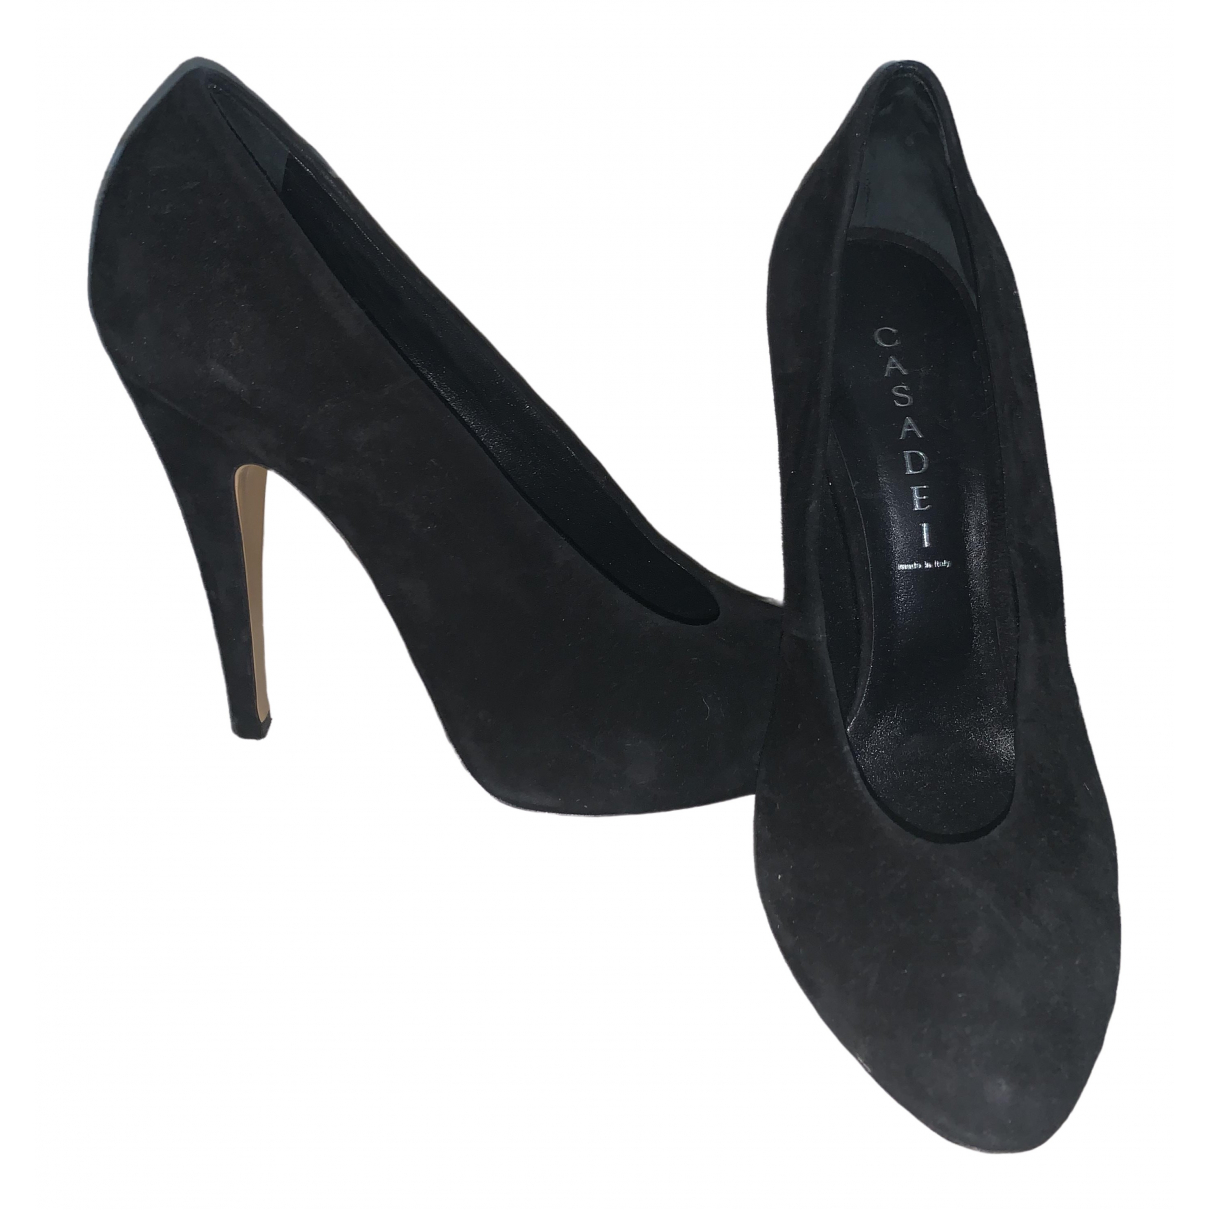 Casadei \N Black Suede Heels for Women 10 UK